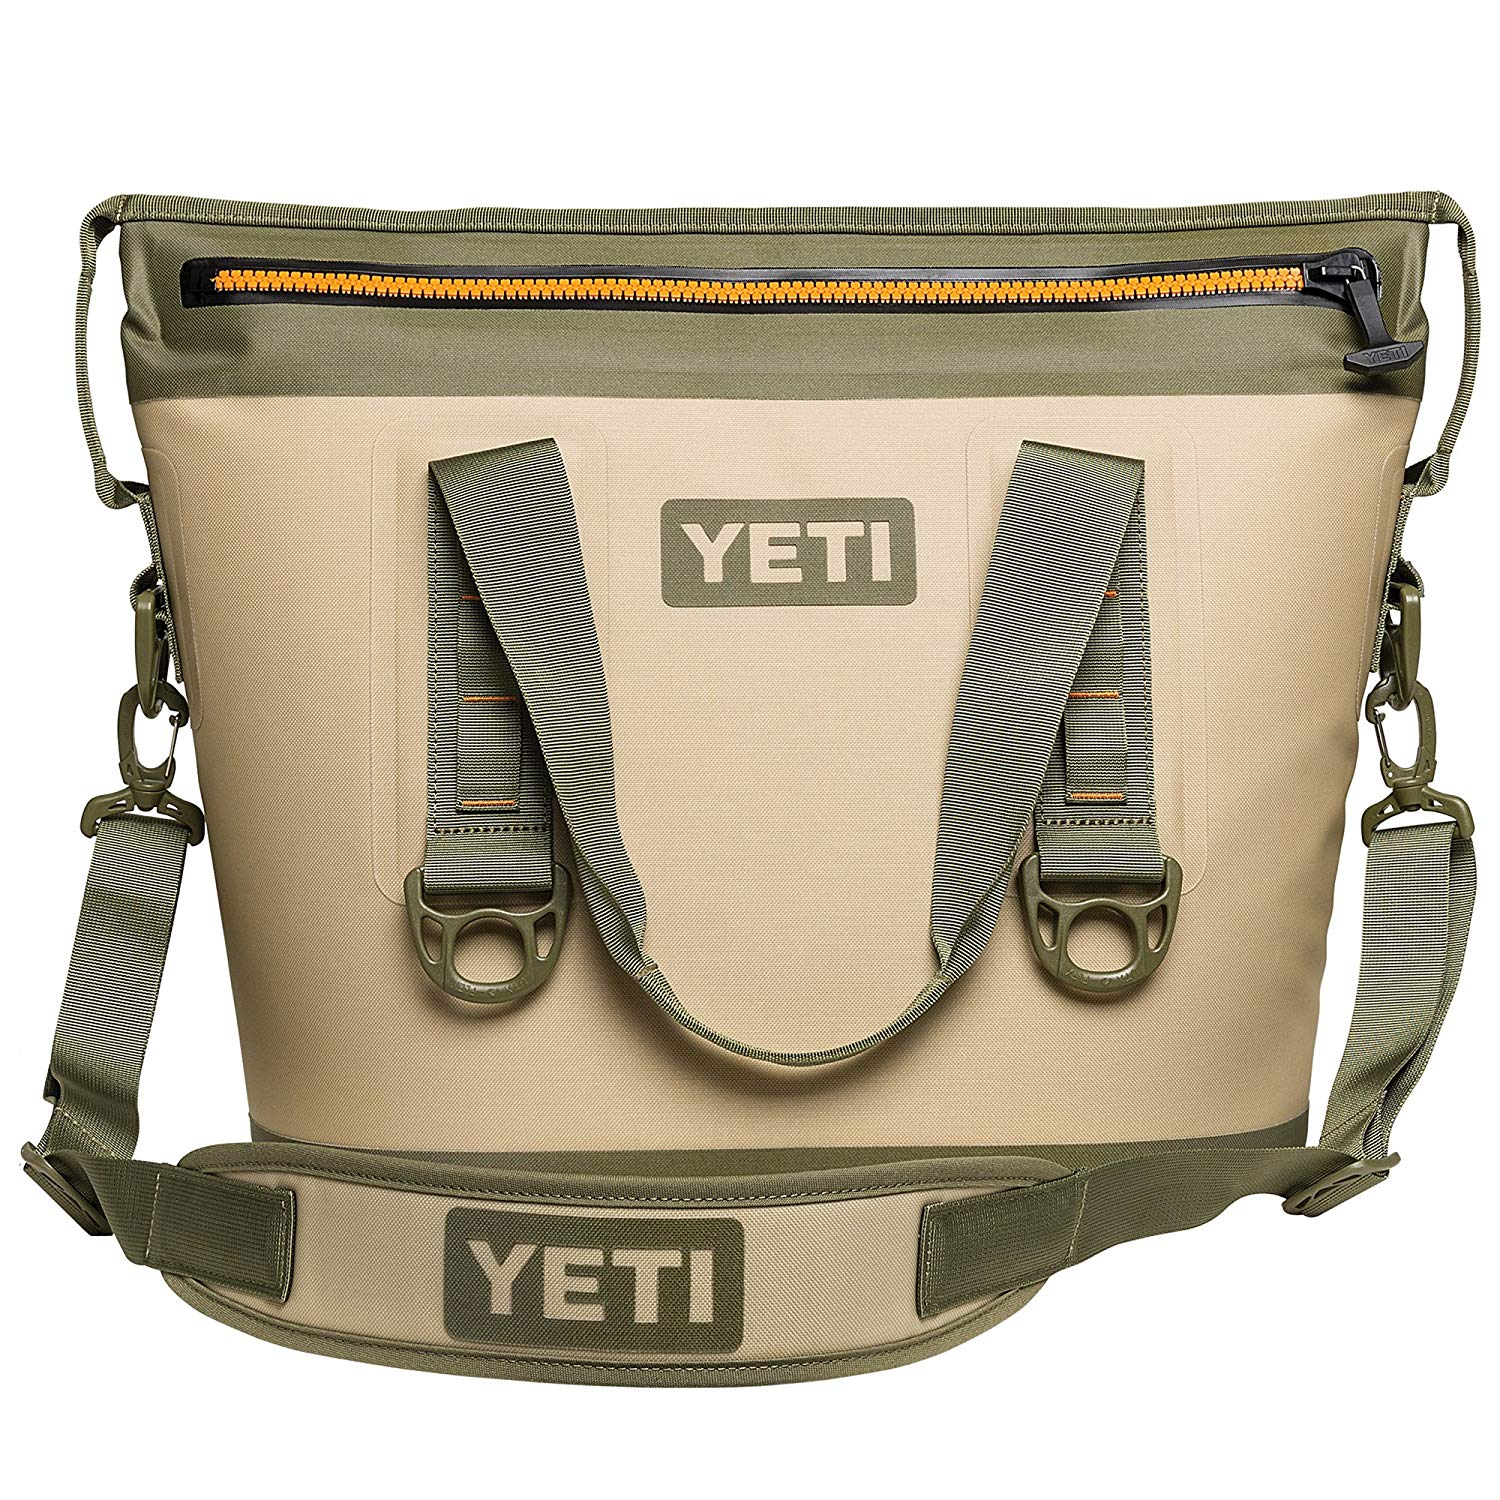 Top 10 Best Yeti Coolers For Hunting & Camping 2021 Reviews 1